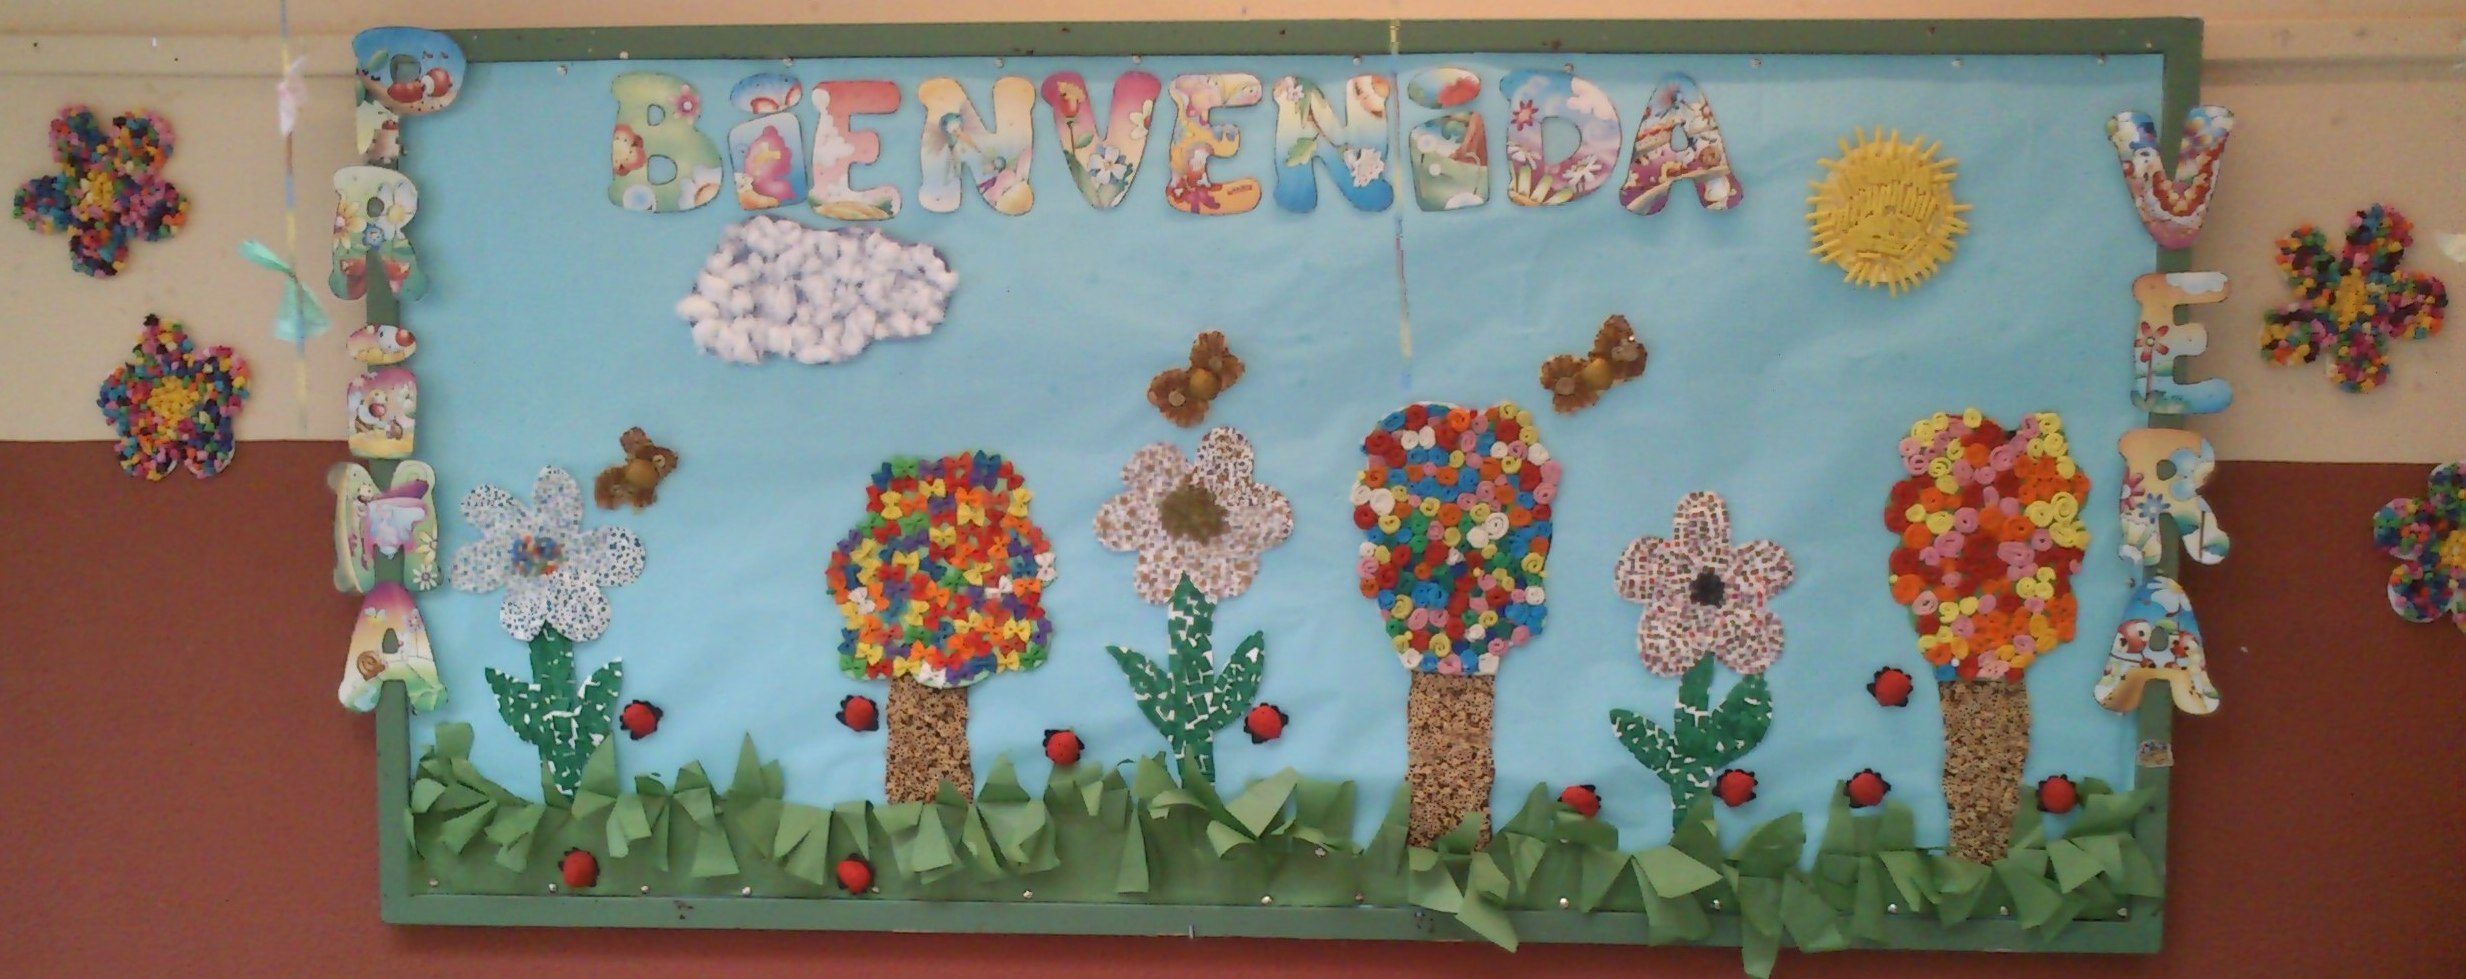 Murales primavera 12 imagenes educativas for Como decorar un mural